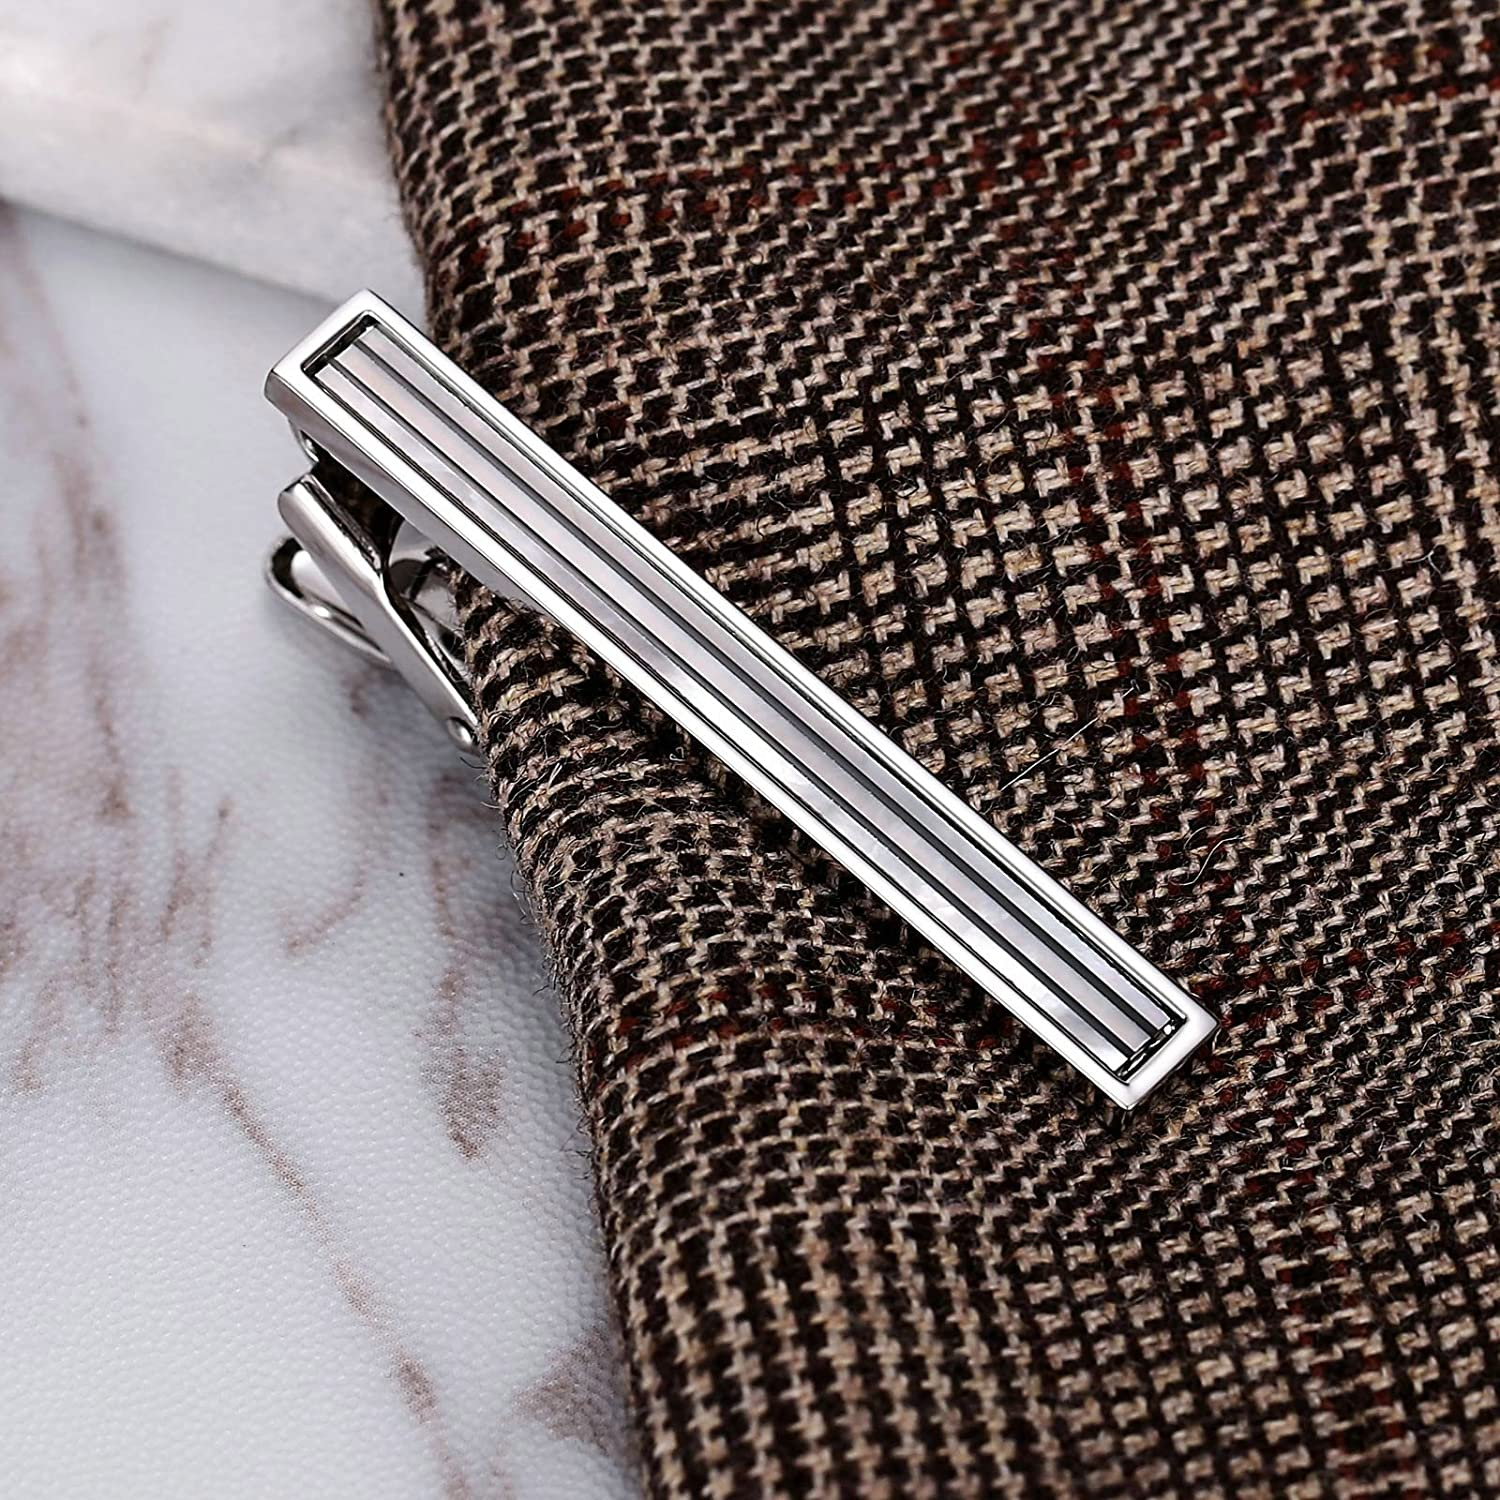 Men Tie Bar Clips Stainless Steel Inlaid with Shell Suitable for Wedding Anniversary Business and Daily Life Aokarry Tie Bar